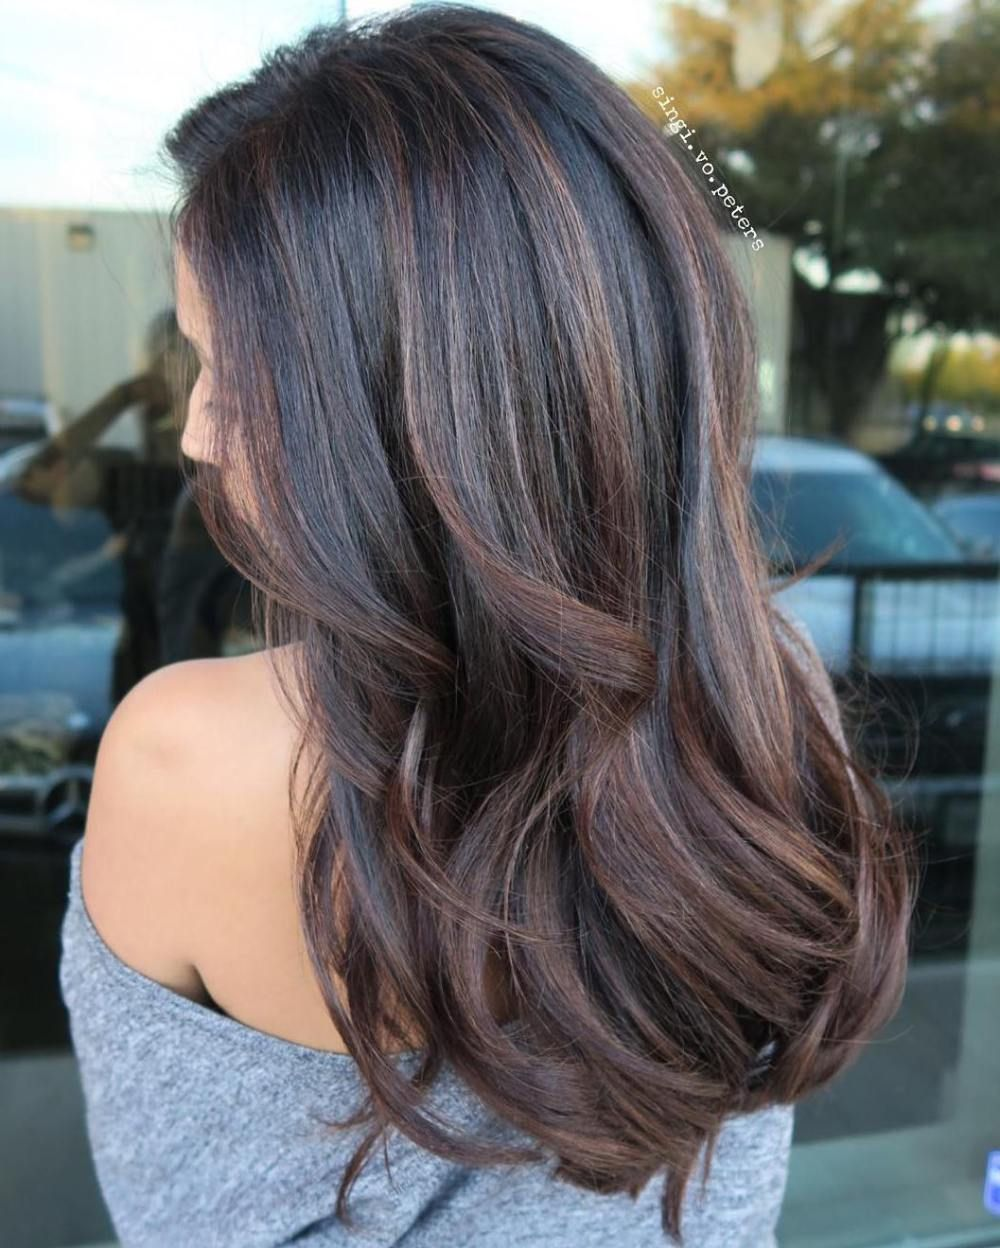 Best Balayage Hair Color Ideas  Flattering Styles for